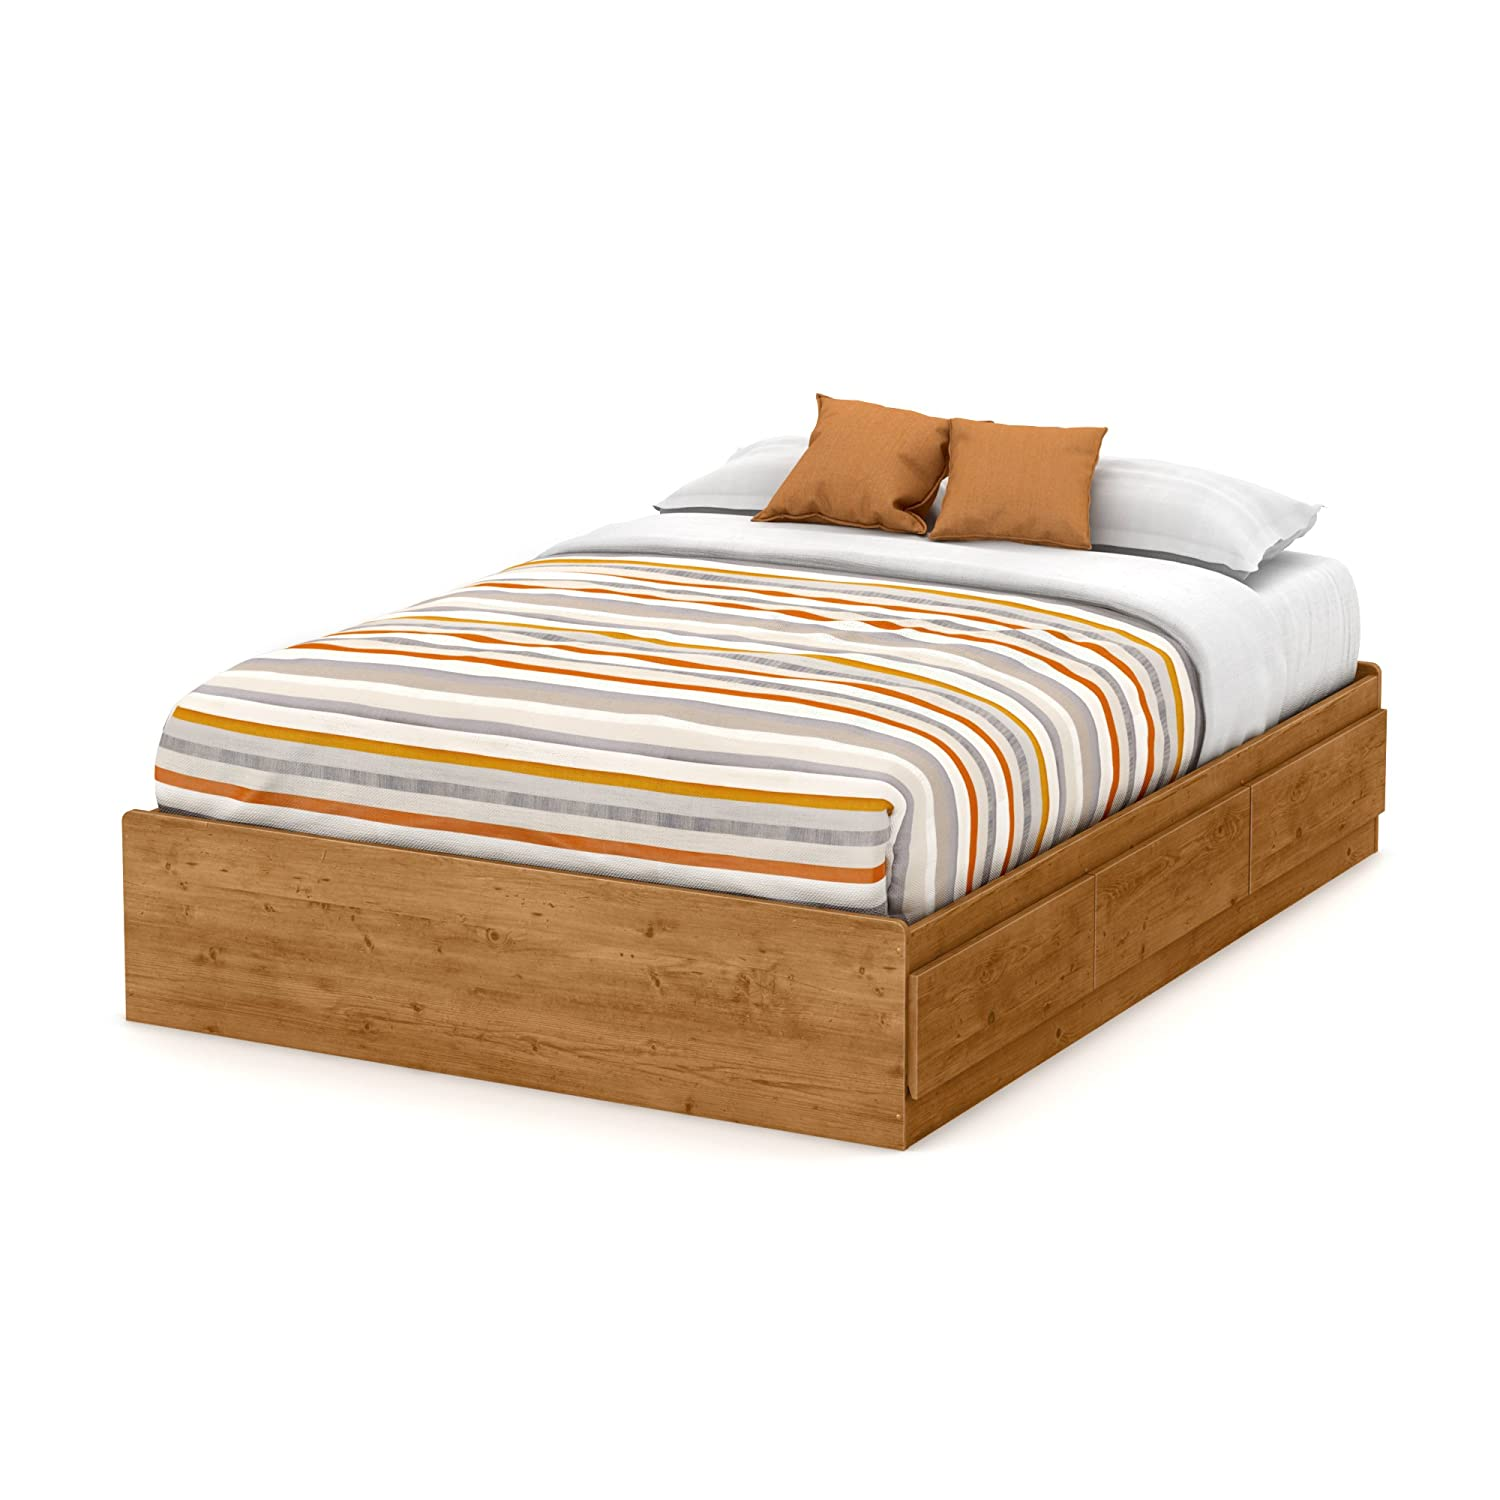 Country Pine South Shore Furniture Little Treasures 54-Inch Full Mates Bed with 3-Drawer